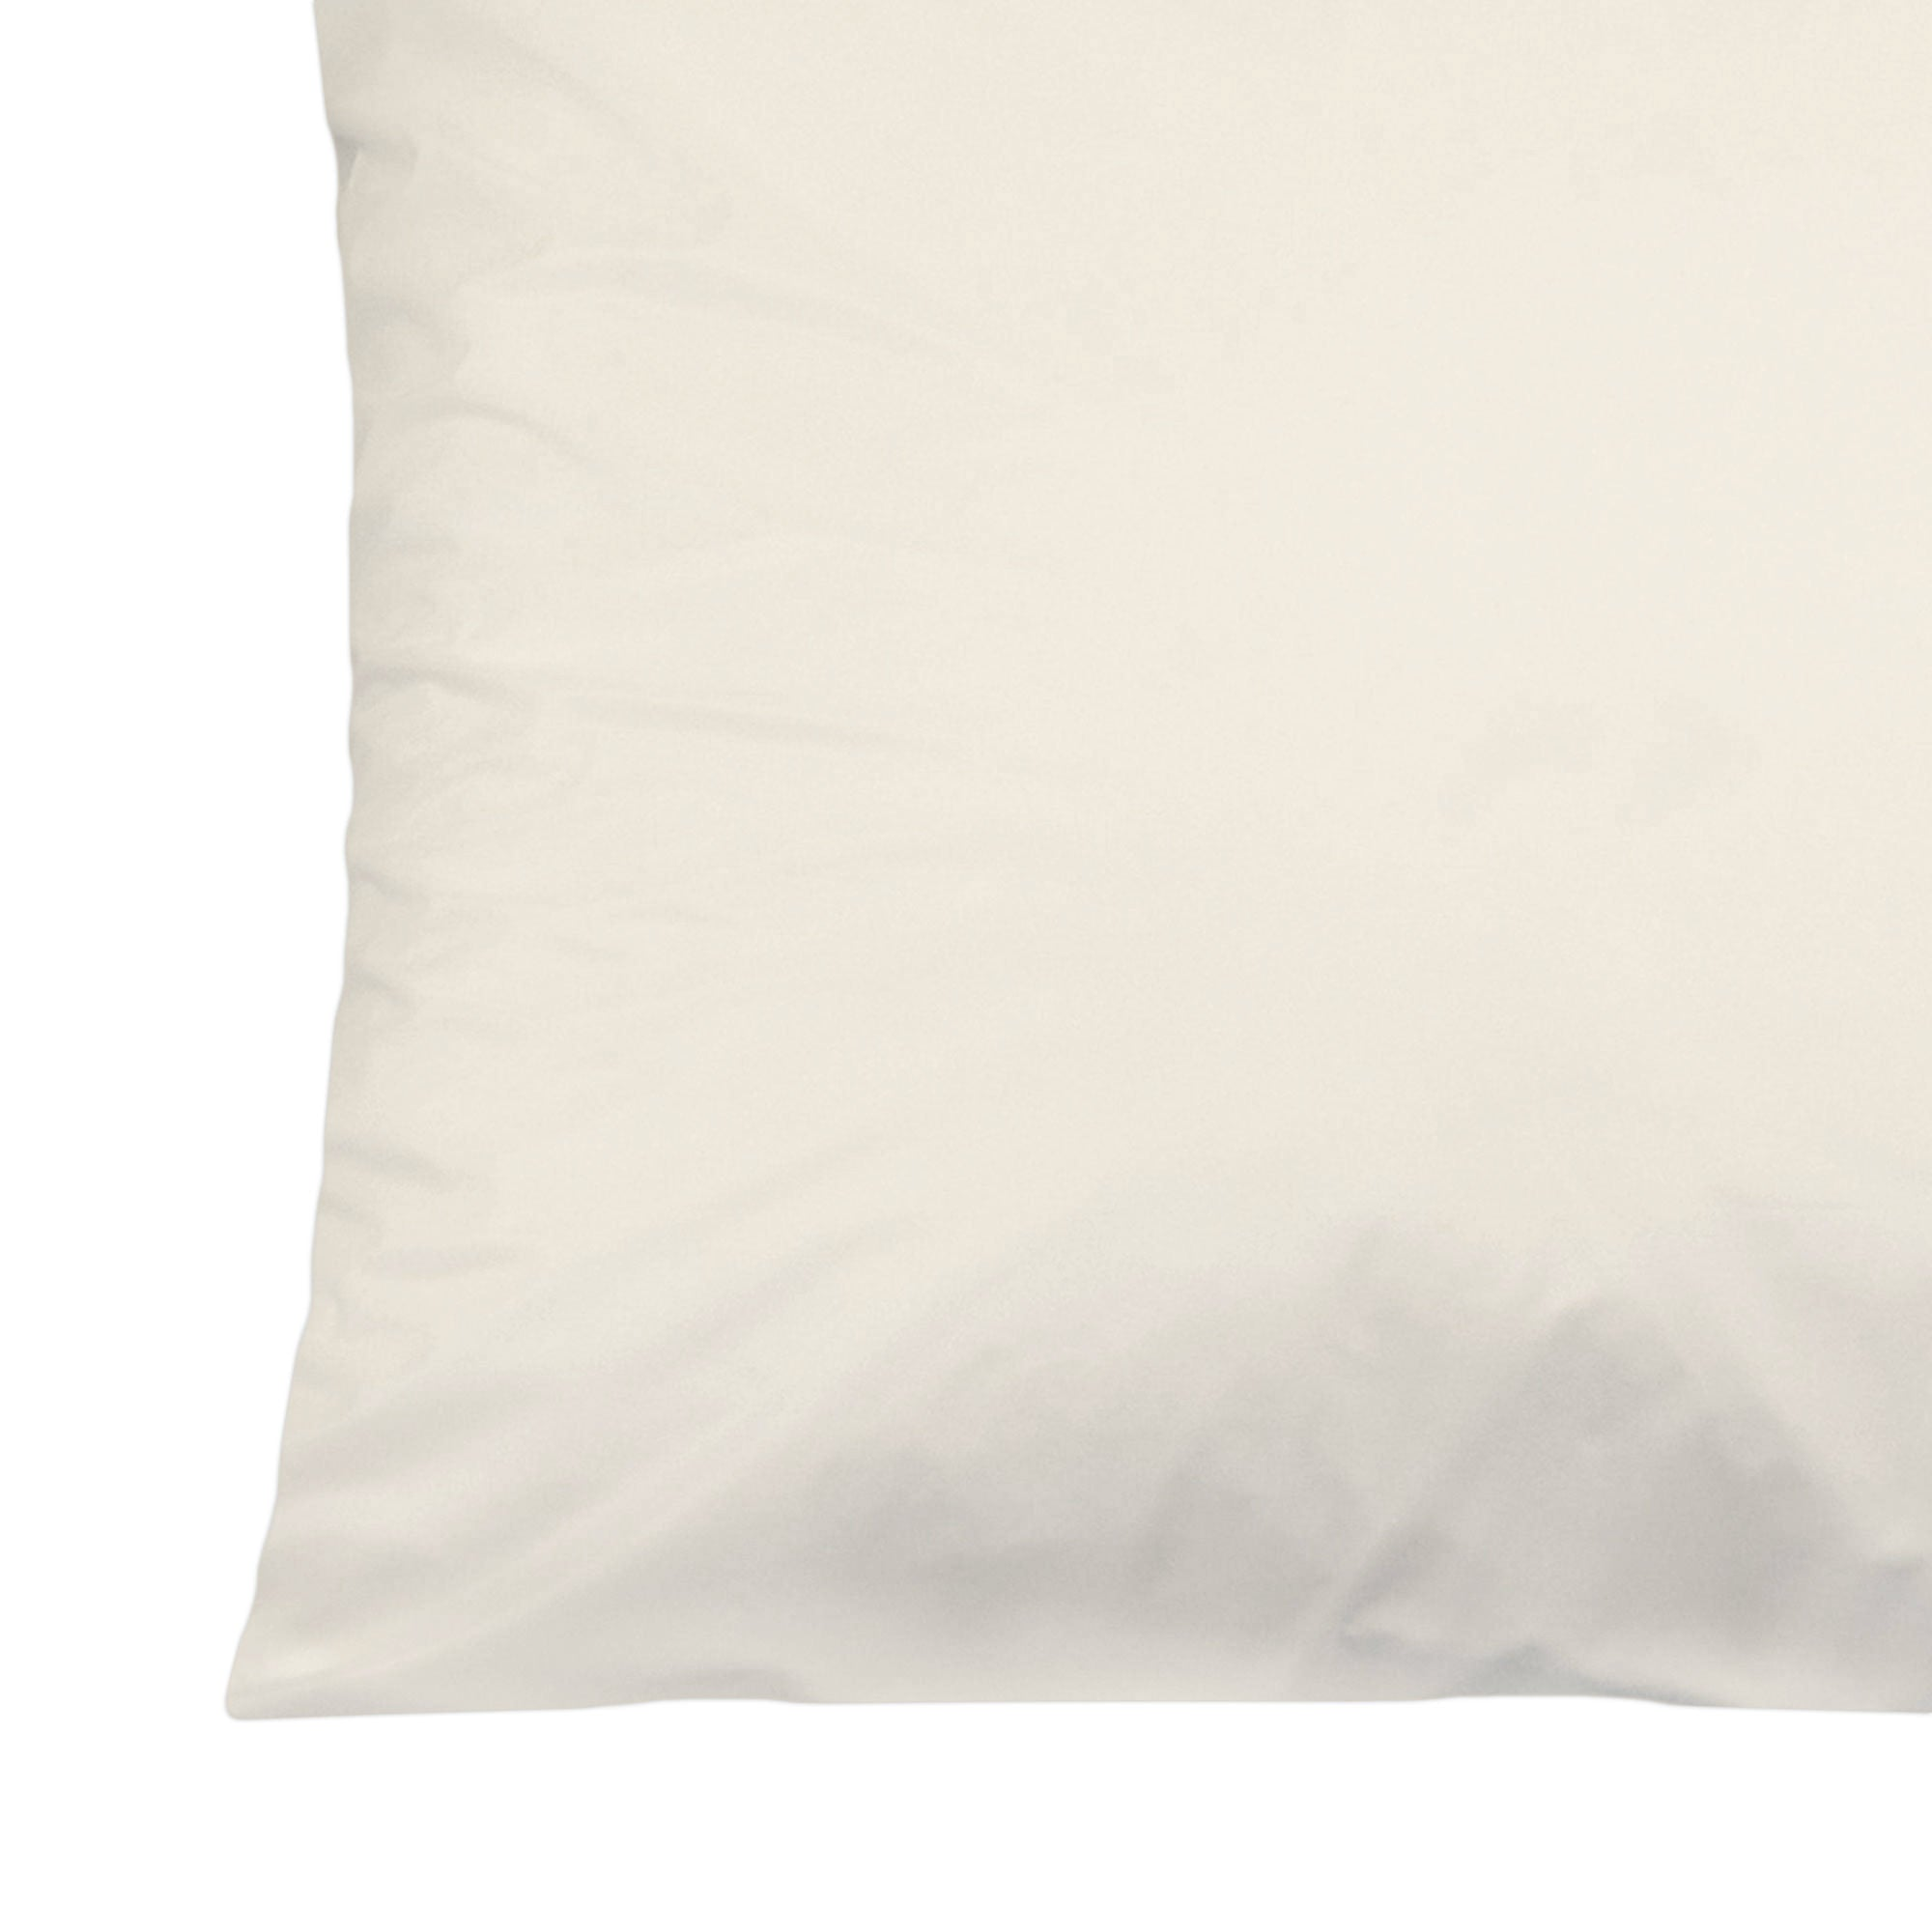 Organic Breathable Waterproof Pillow Protector